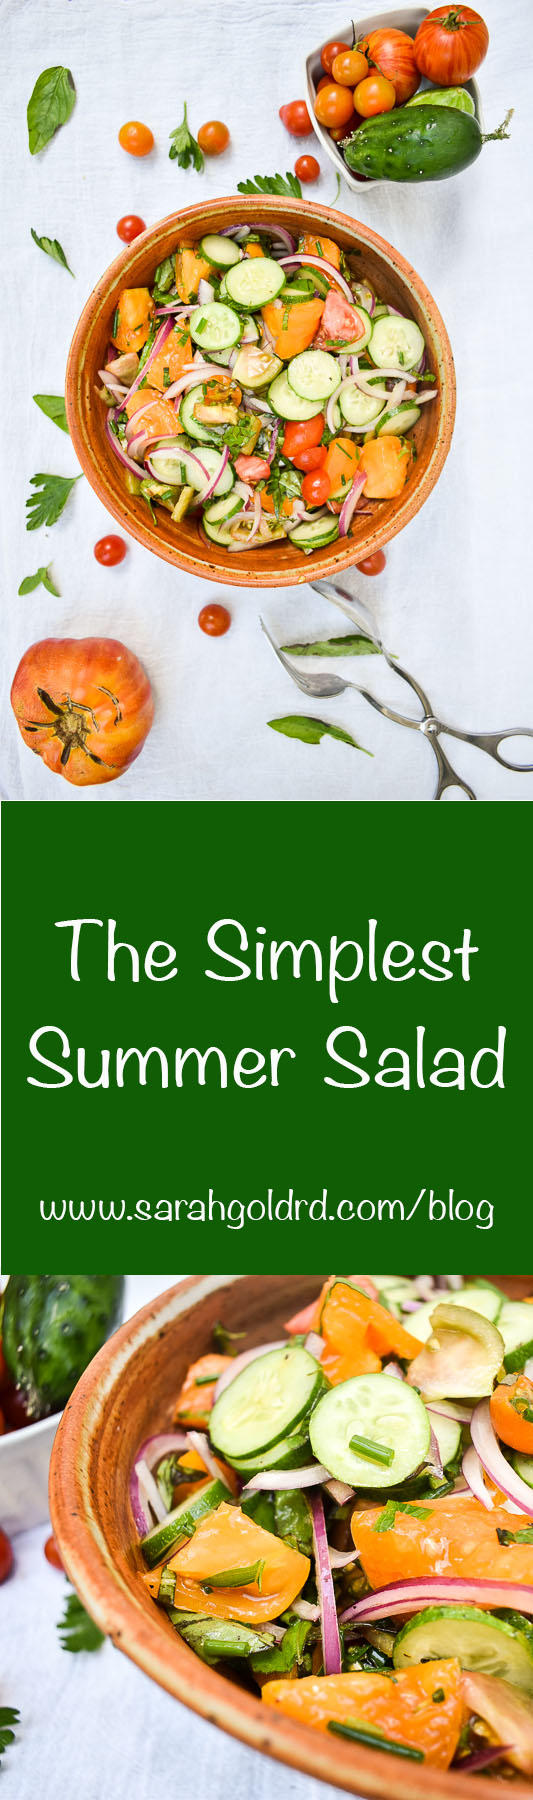 Simple Summer Salad Pinterest.jpg